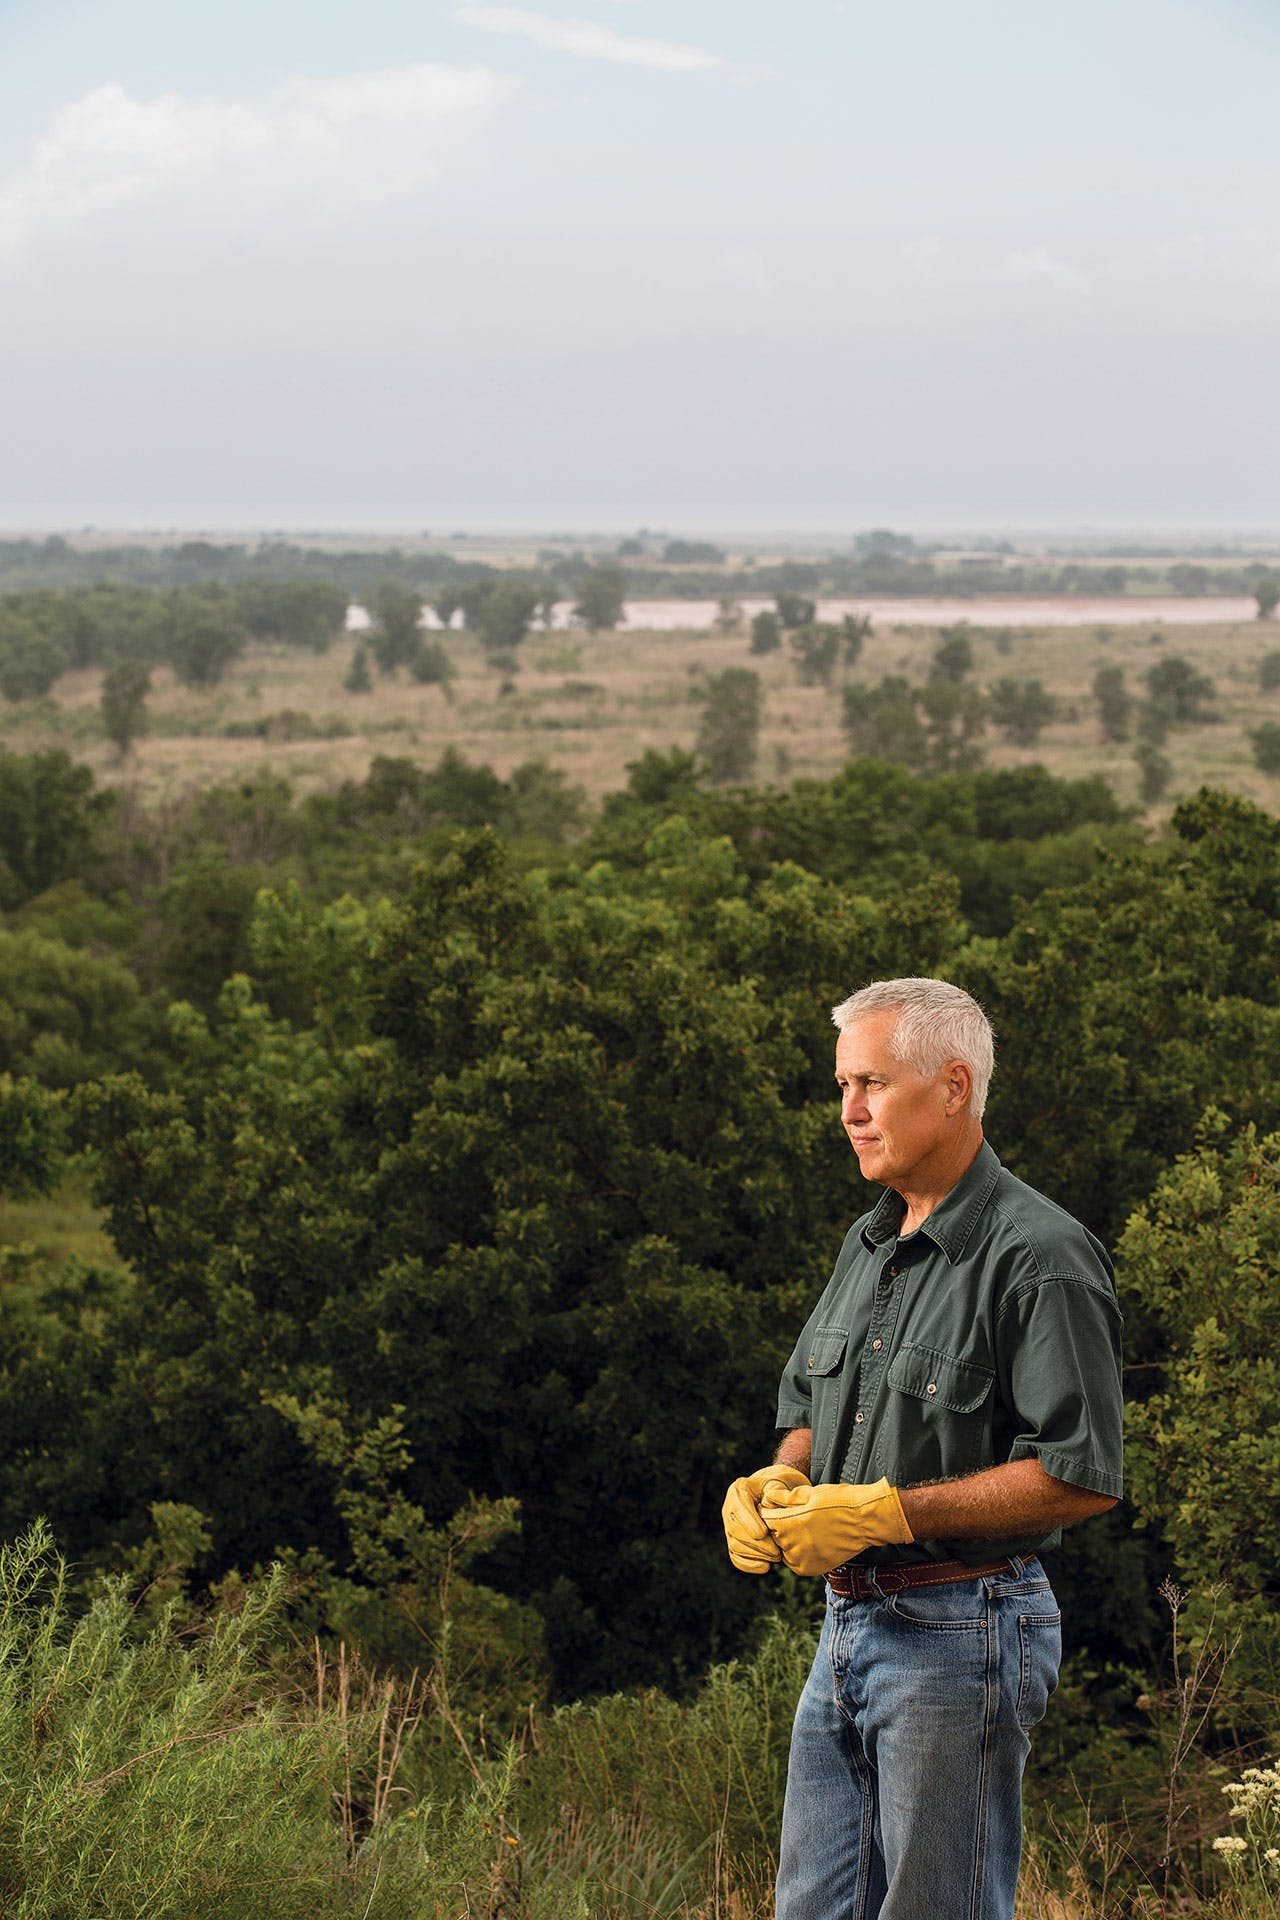 Canan on his North Texas property, with the Red River in the background, on May 26, 2016.